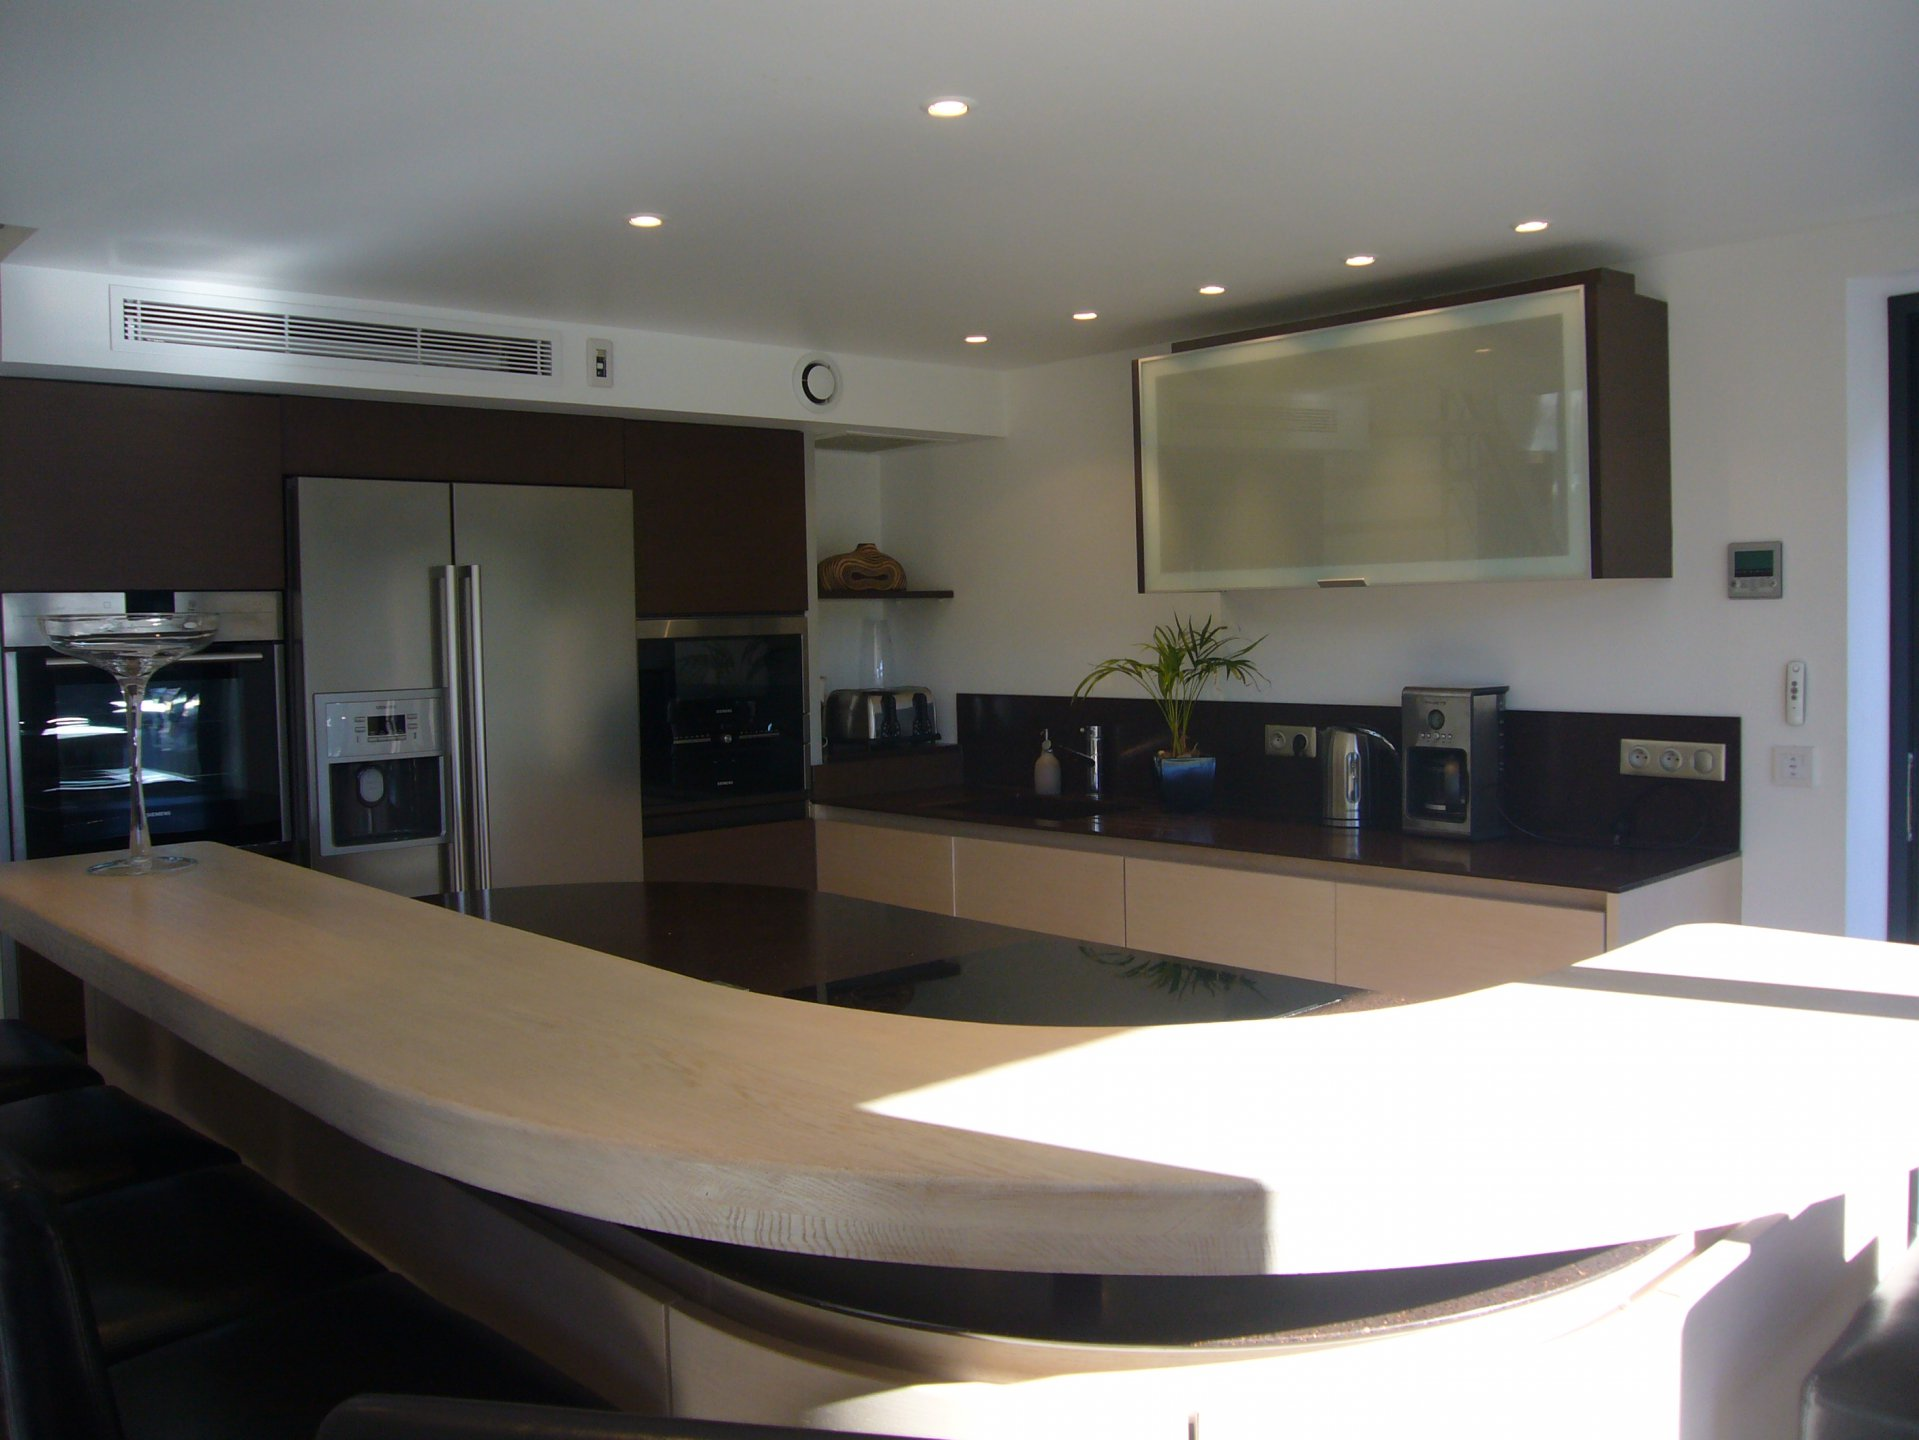 Kitchen, stainless steel, kitchen bar